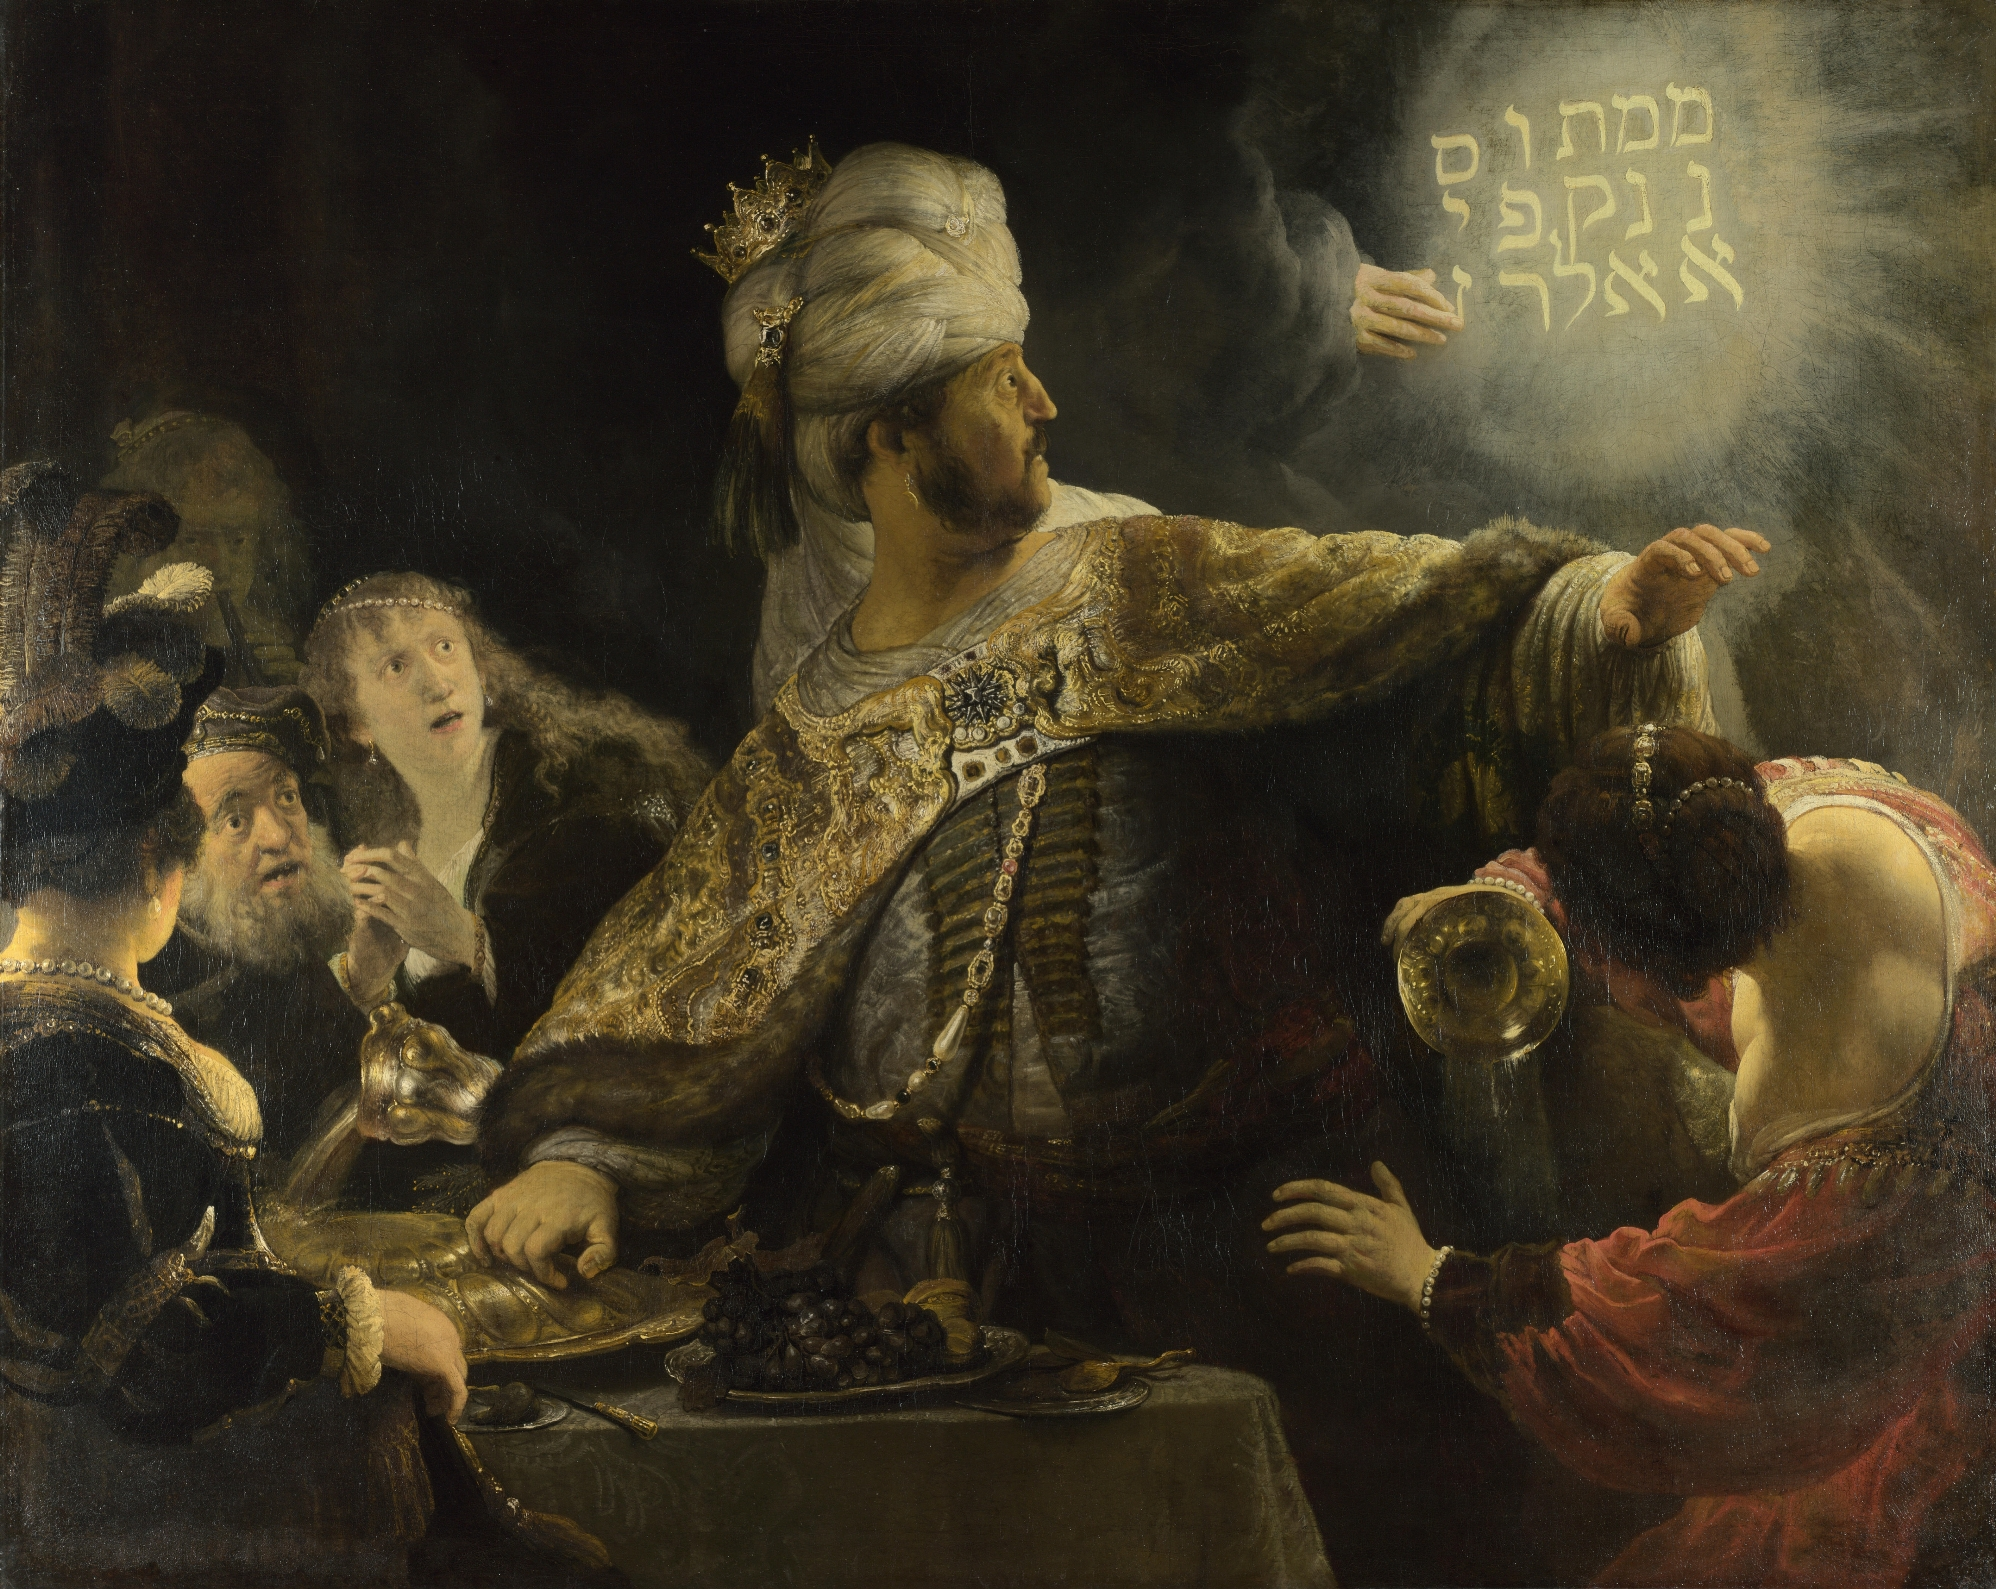 """Belshazzar's Feast"", a painting by Rembrandt, circa 1635, depicting an incident from the Book of Daniel"